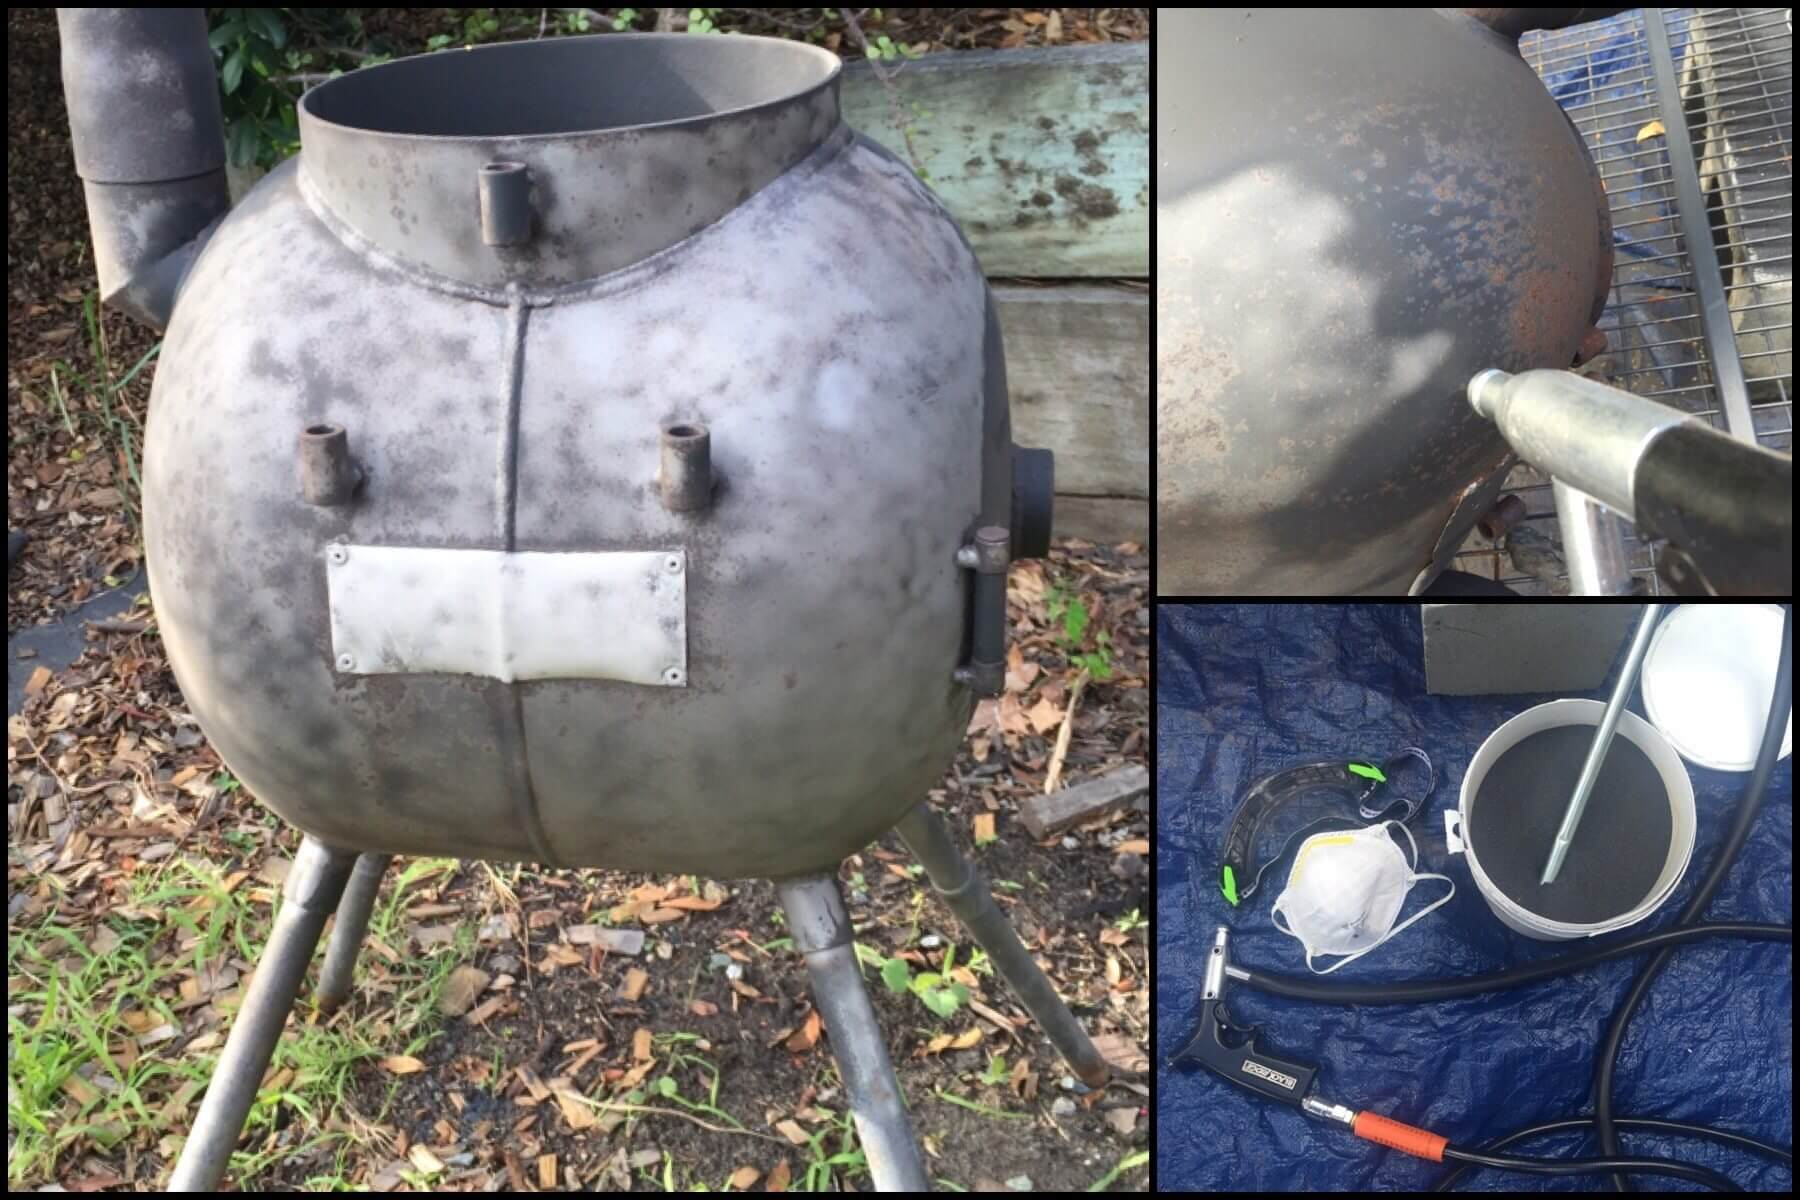 Cleaning and Repainting a Rusty Ozpig Using a Sandblaster